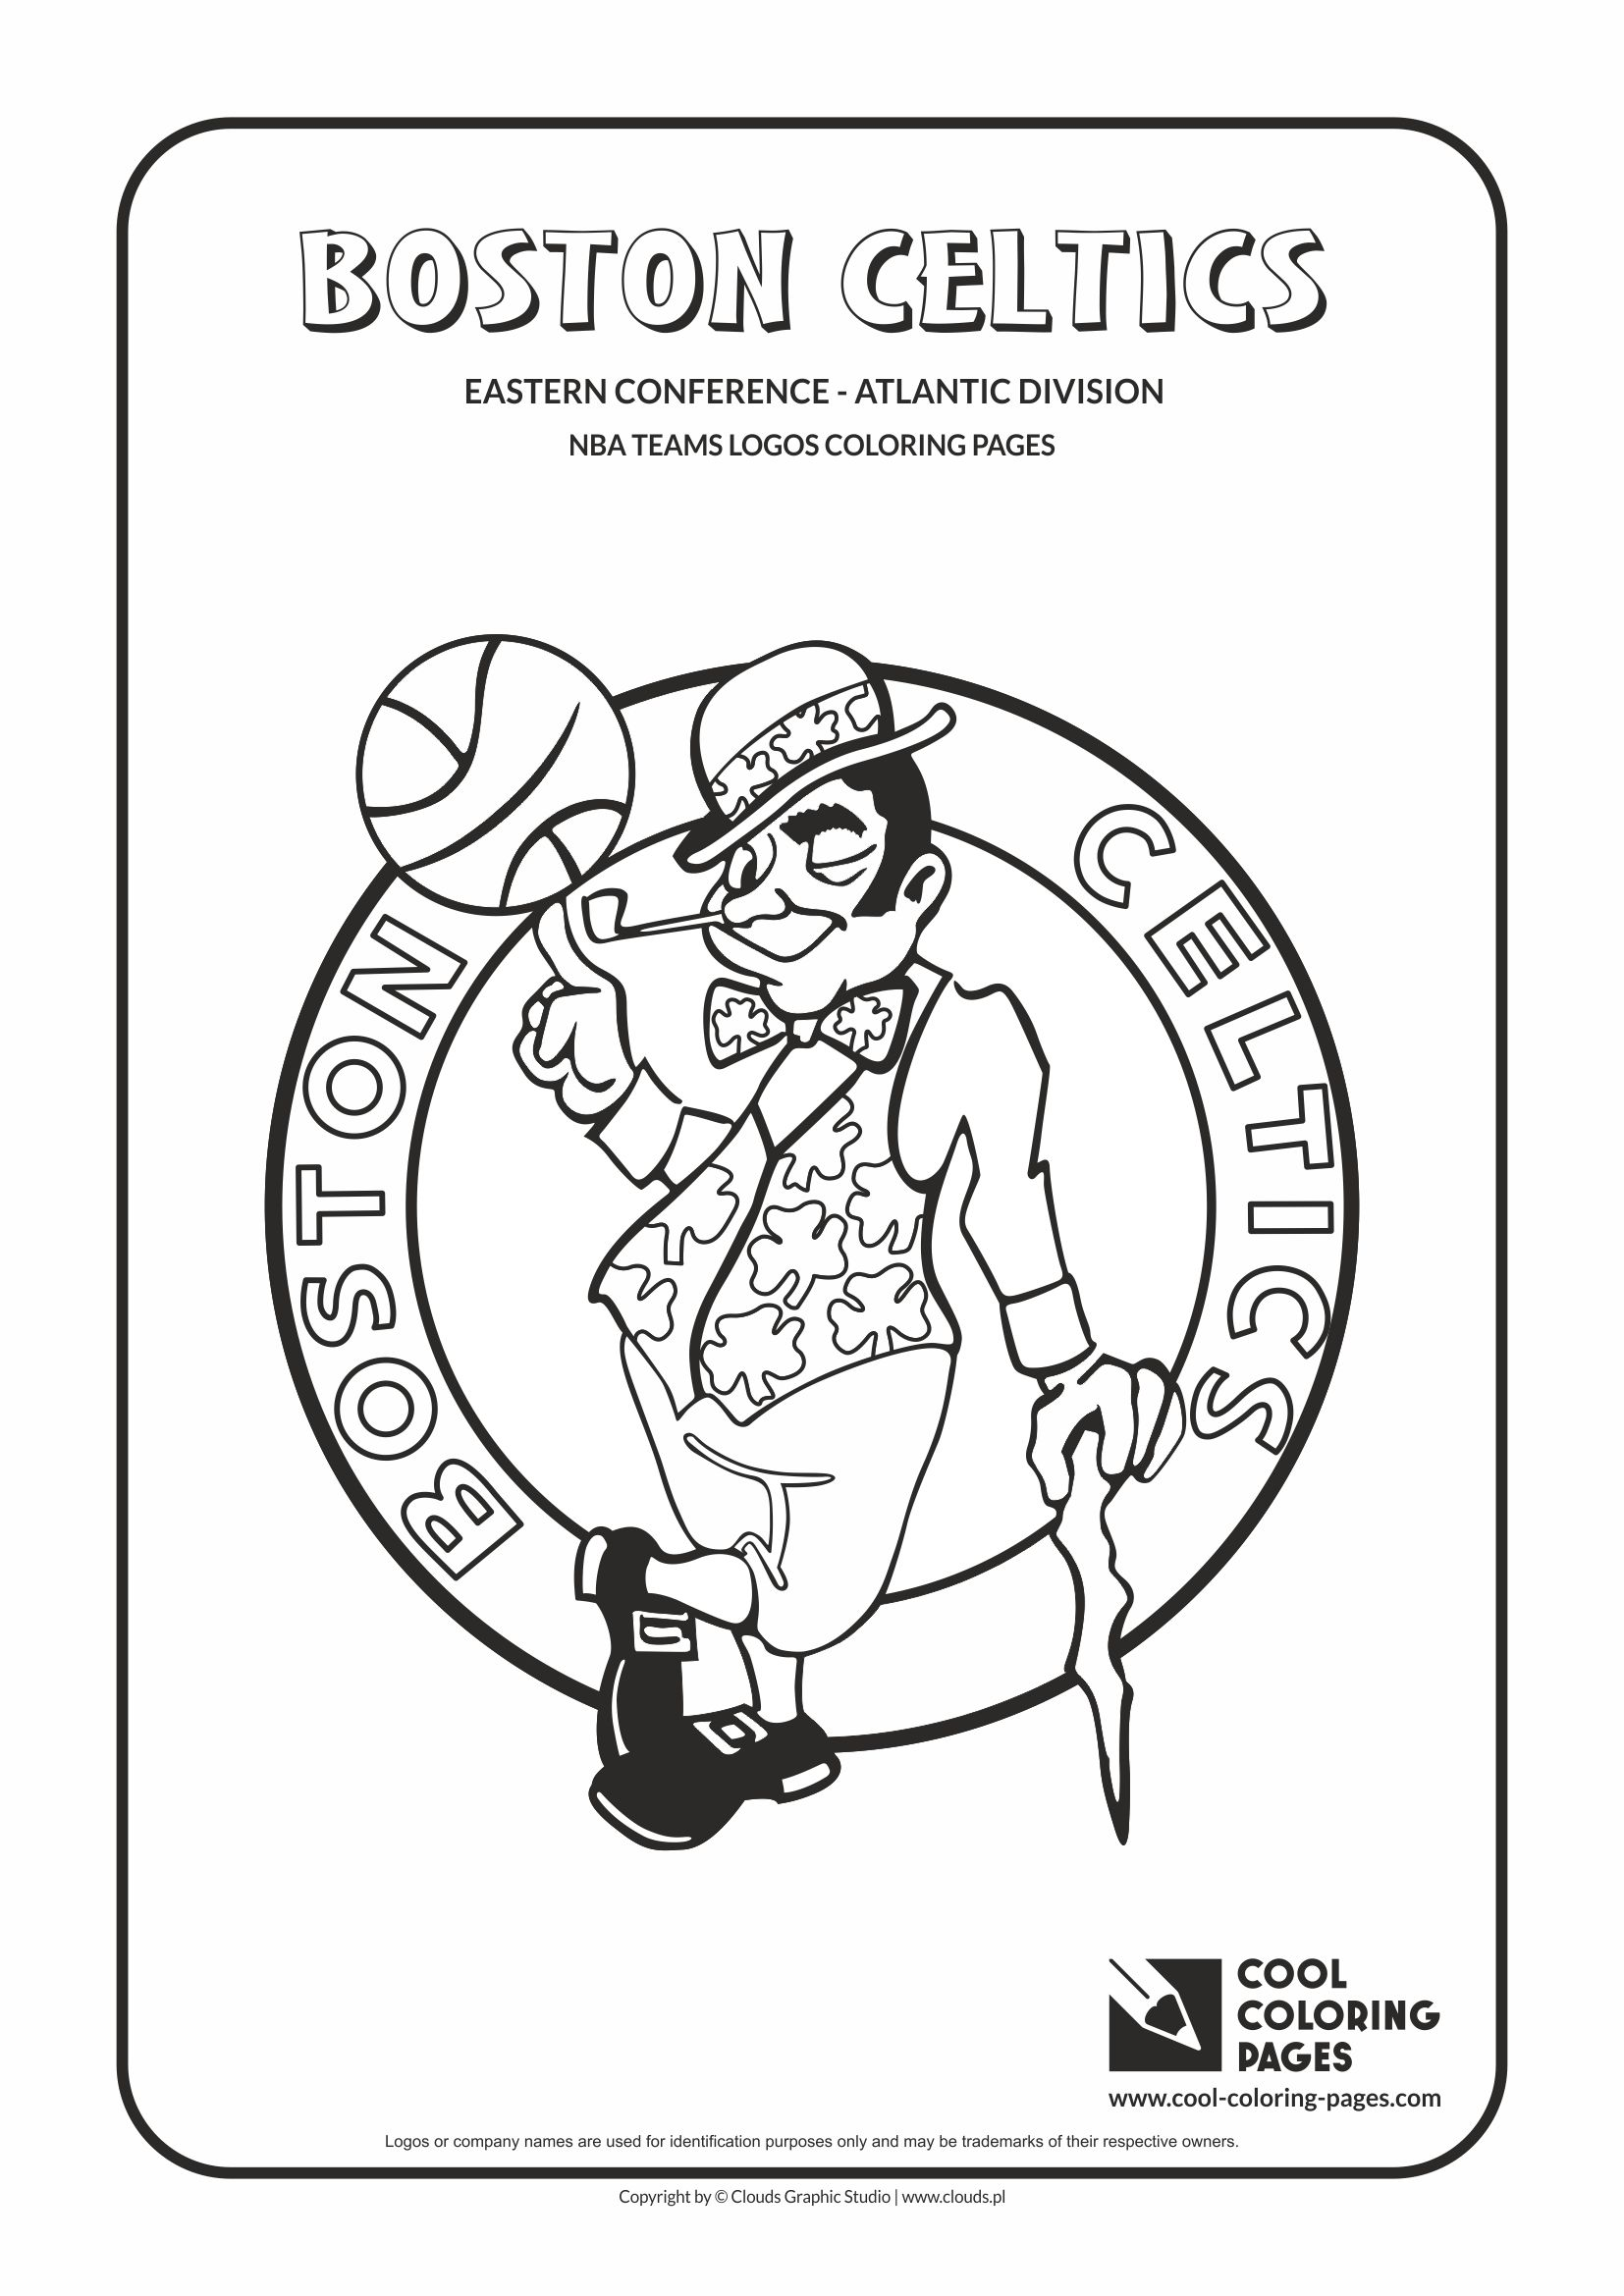 Cool Coloring Pages Boston Celtics Nba Basketball Teams Logos Coloring Pages Cool Coloring Pages Free Educational Coloring Pages And Activities For Kids